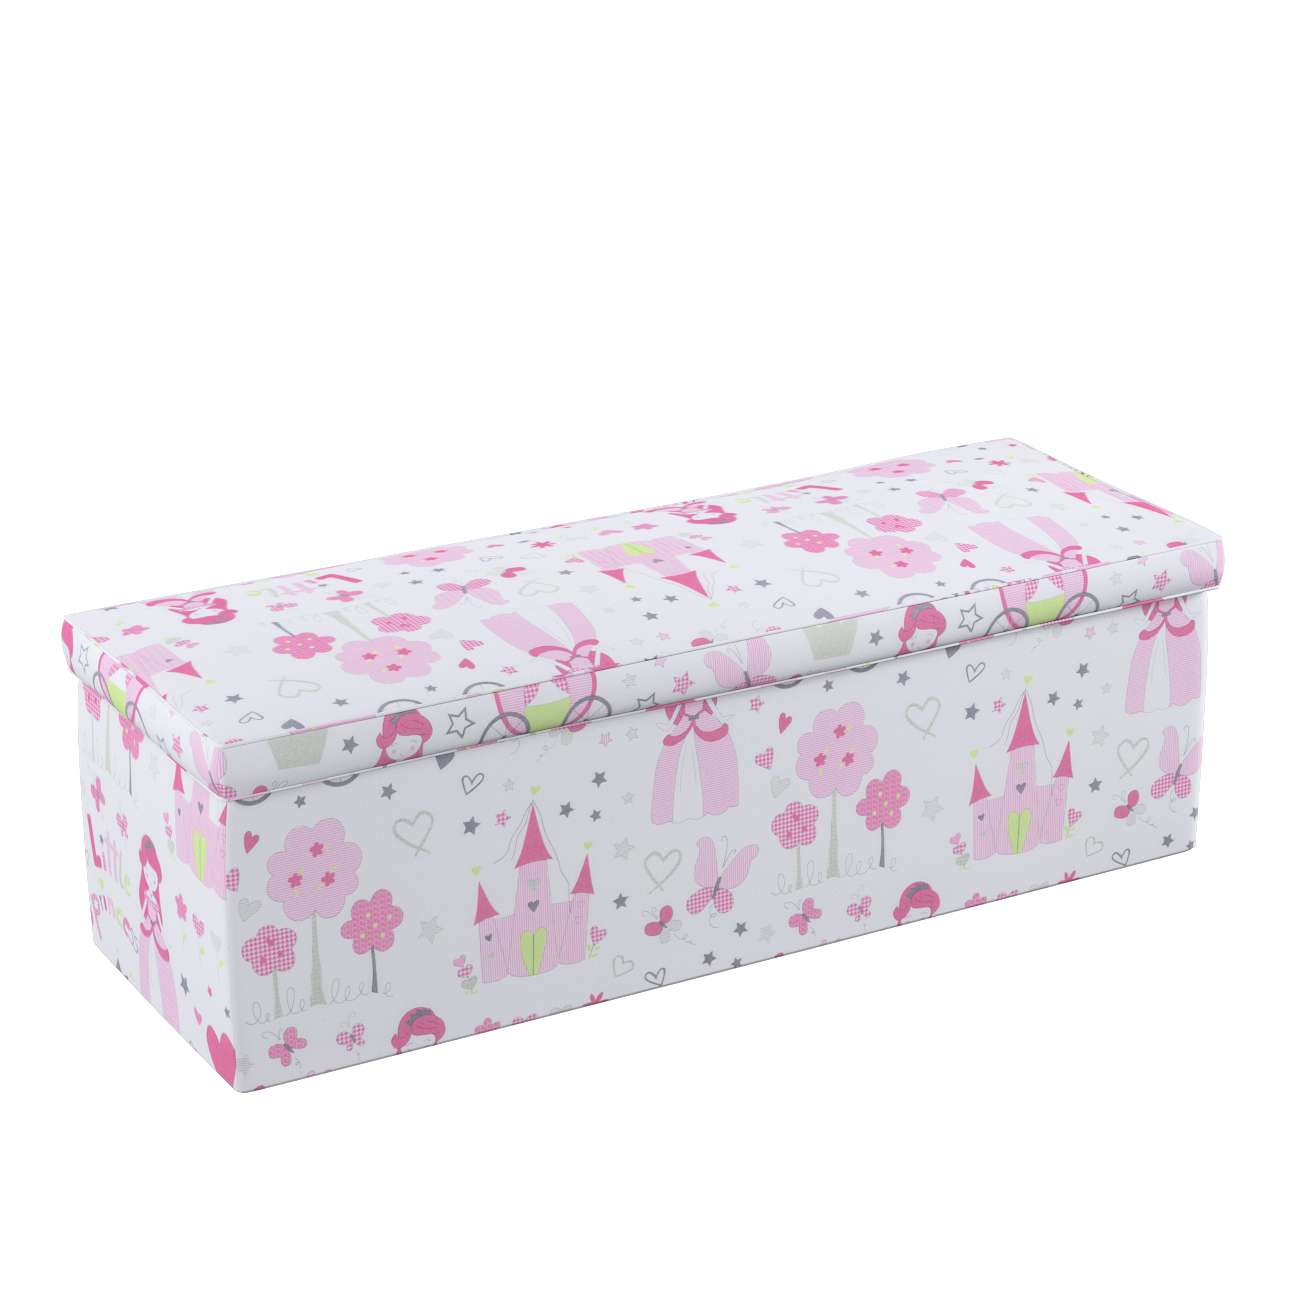 Truhe 90 x 40 x 40 cm von der Kollektion Little World, Stoff: 141-28